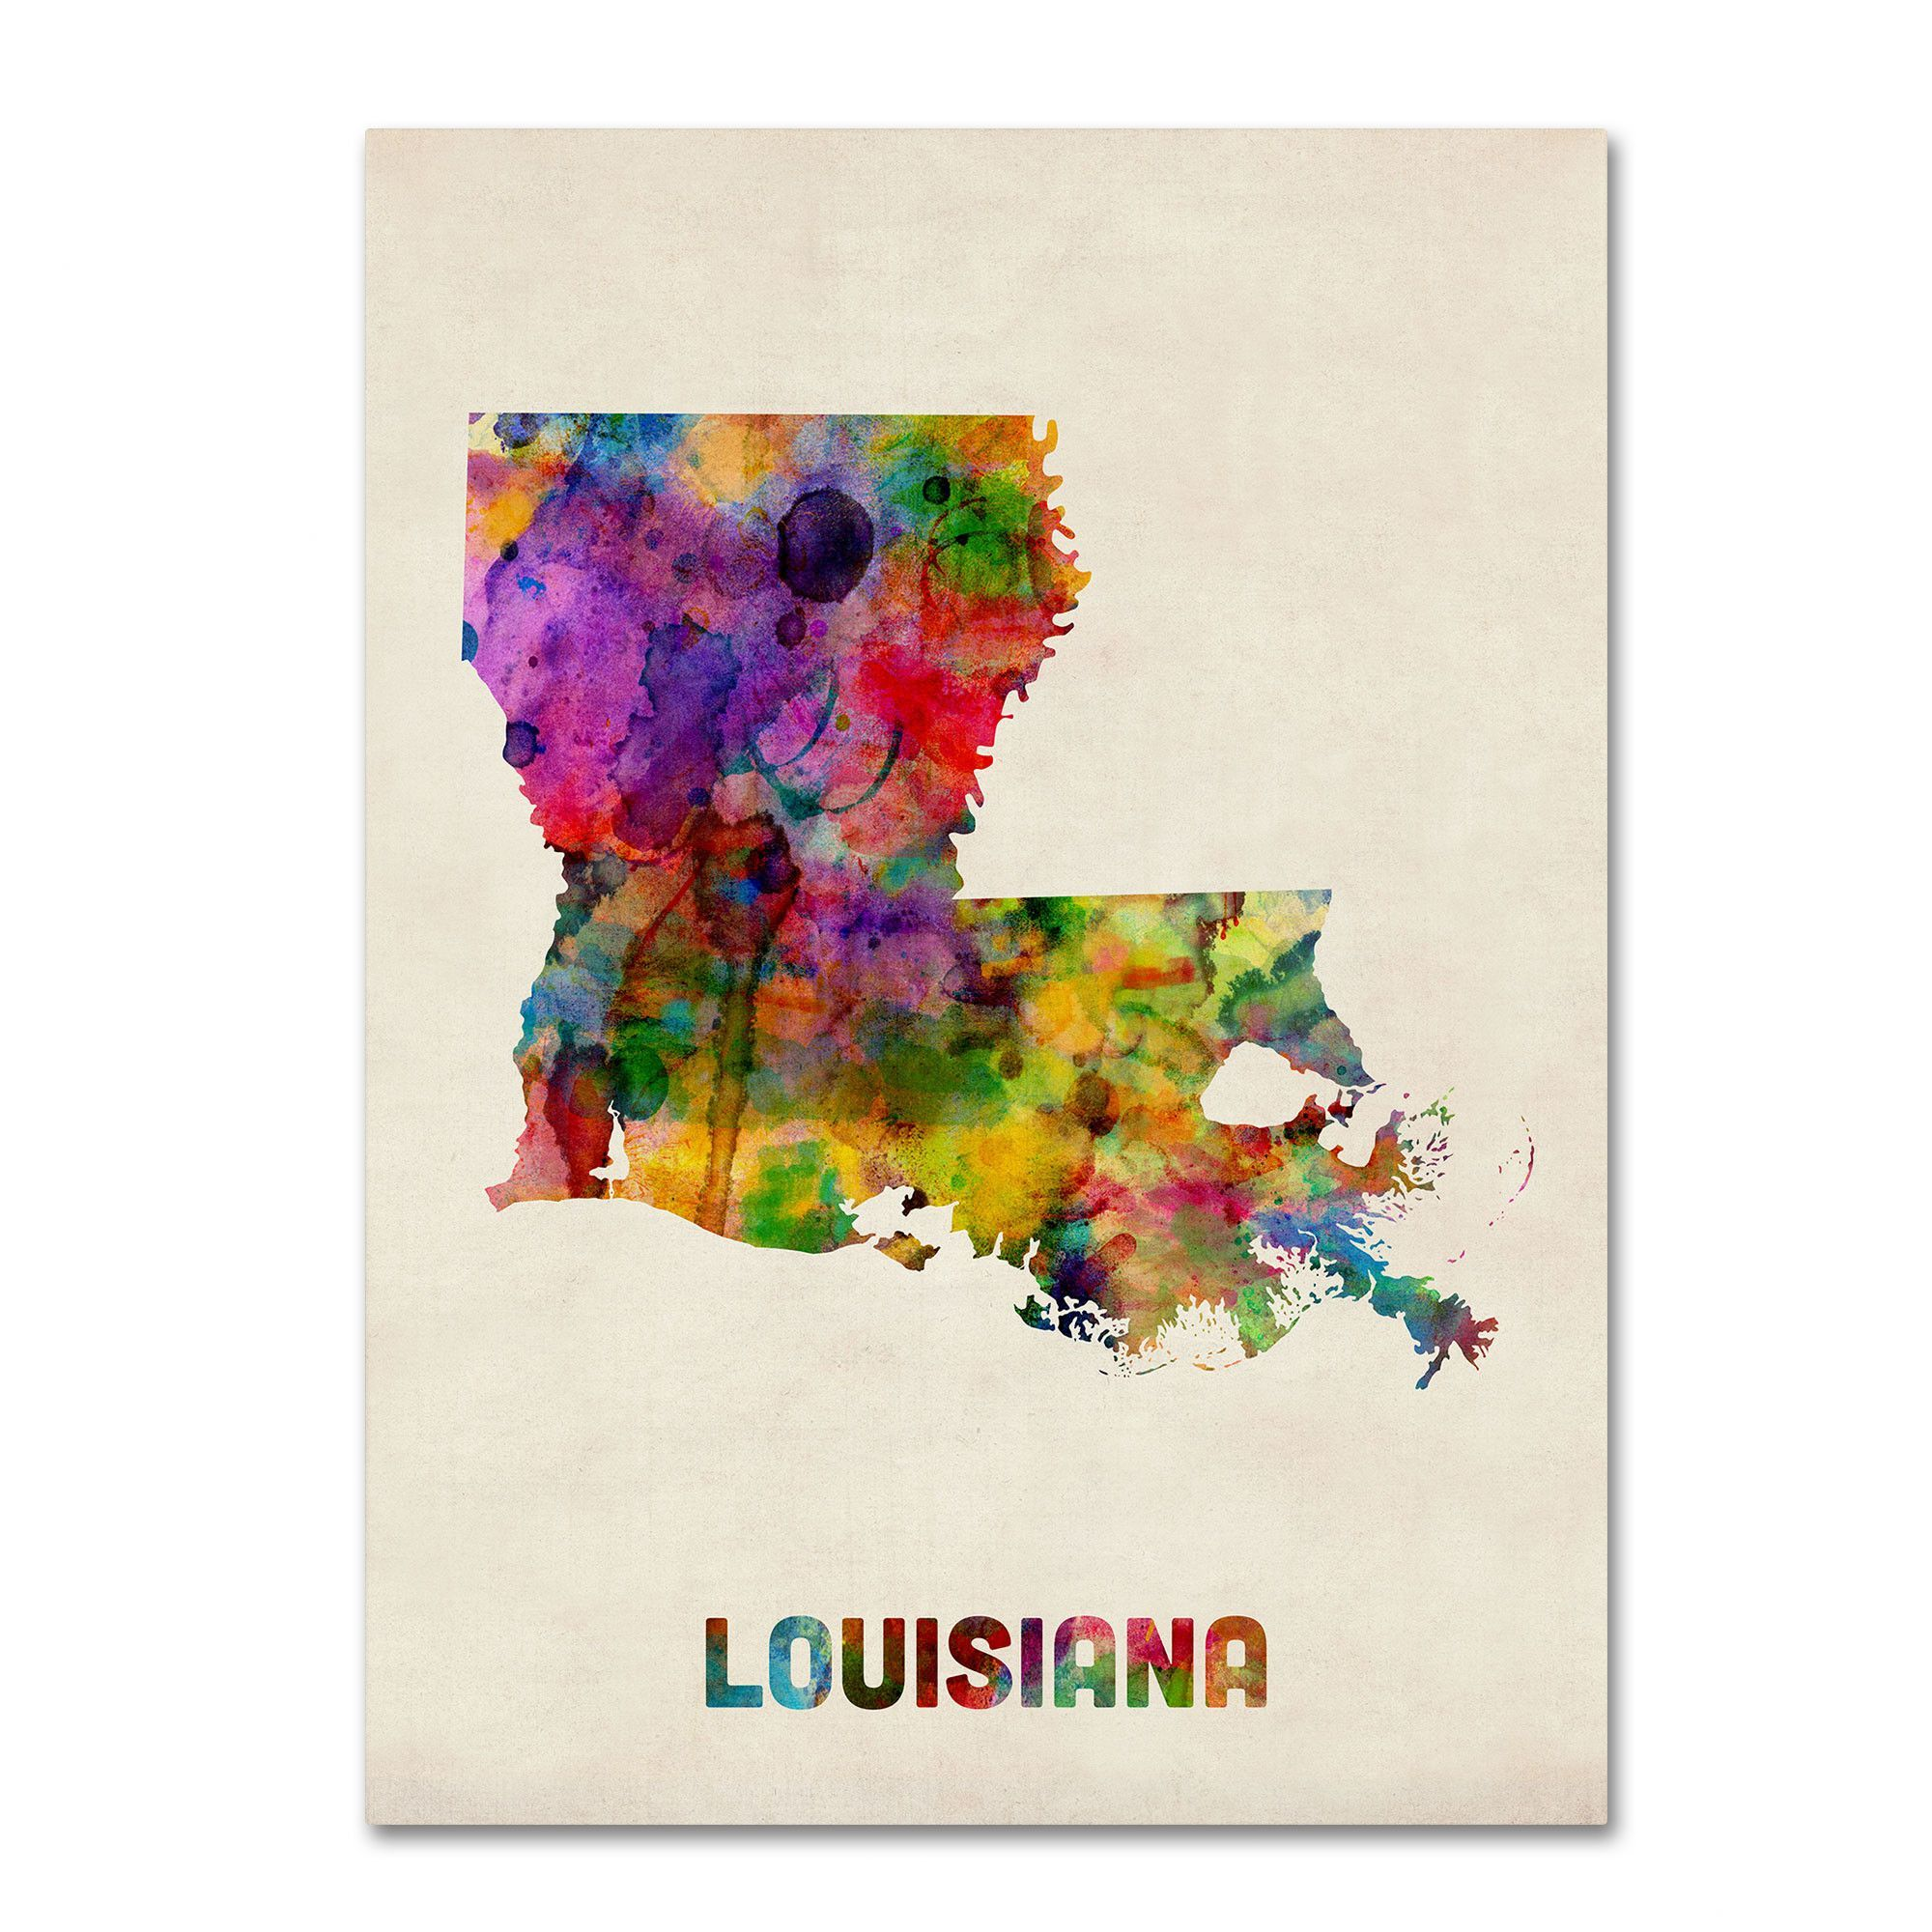 Louisiana Map by Michael Tompsett Graphic Art on Canvas